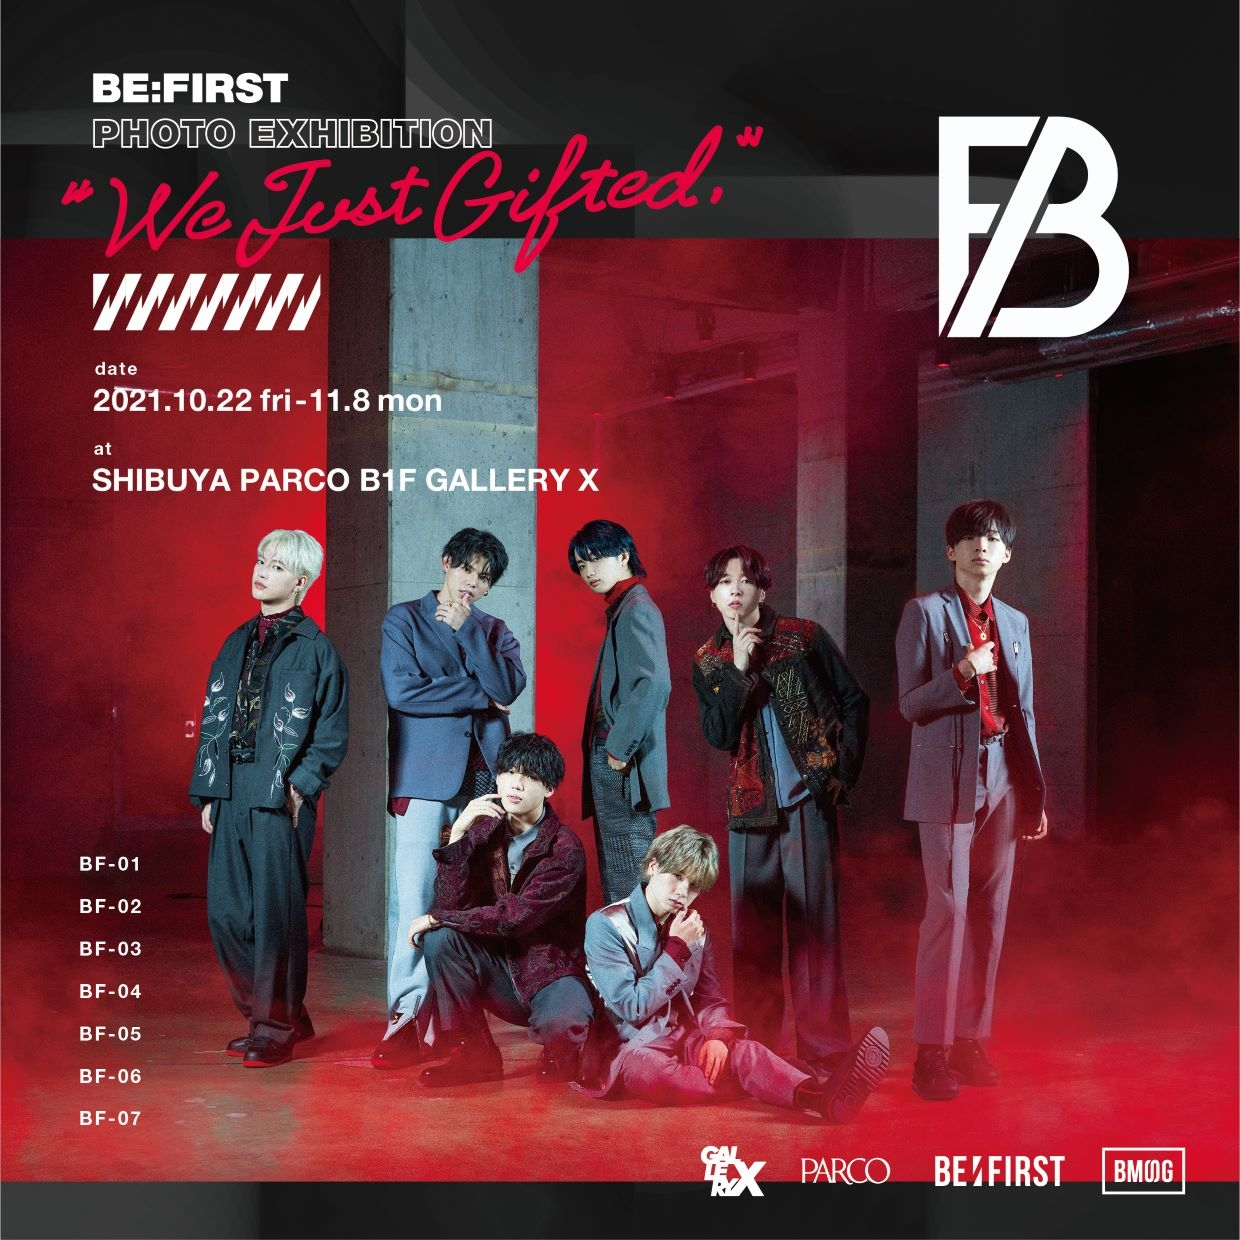 BE:FIRST PHOTO EXHIBITION